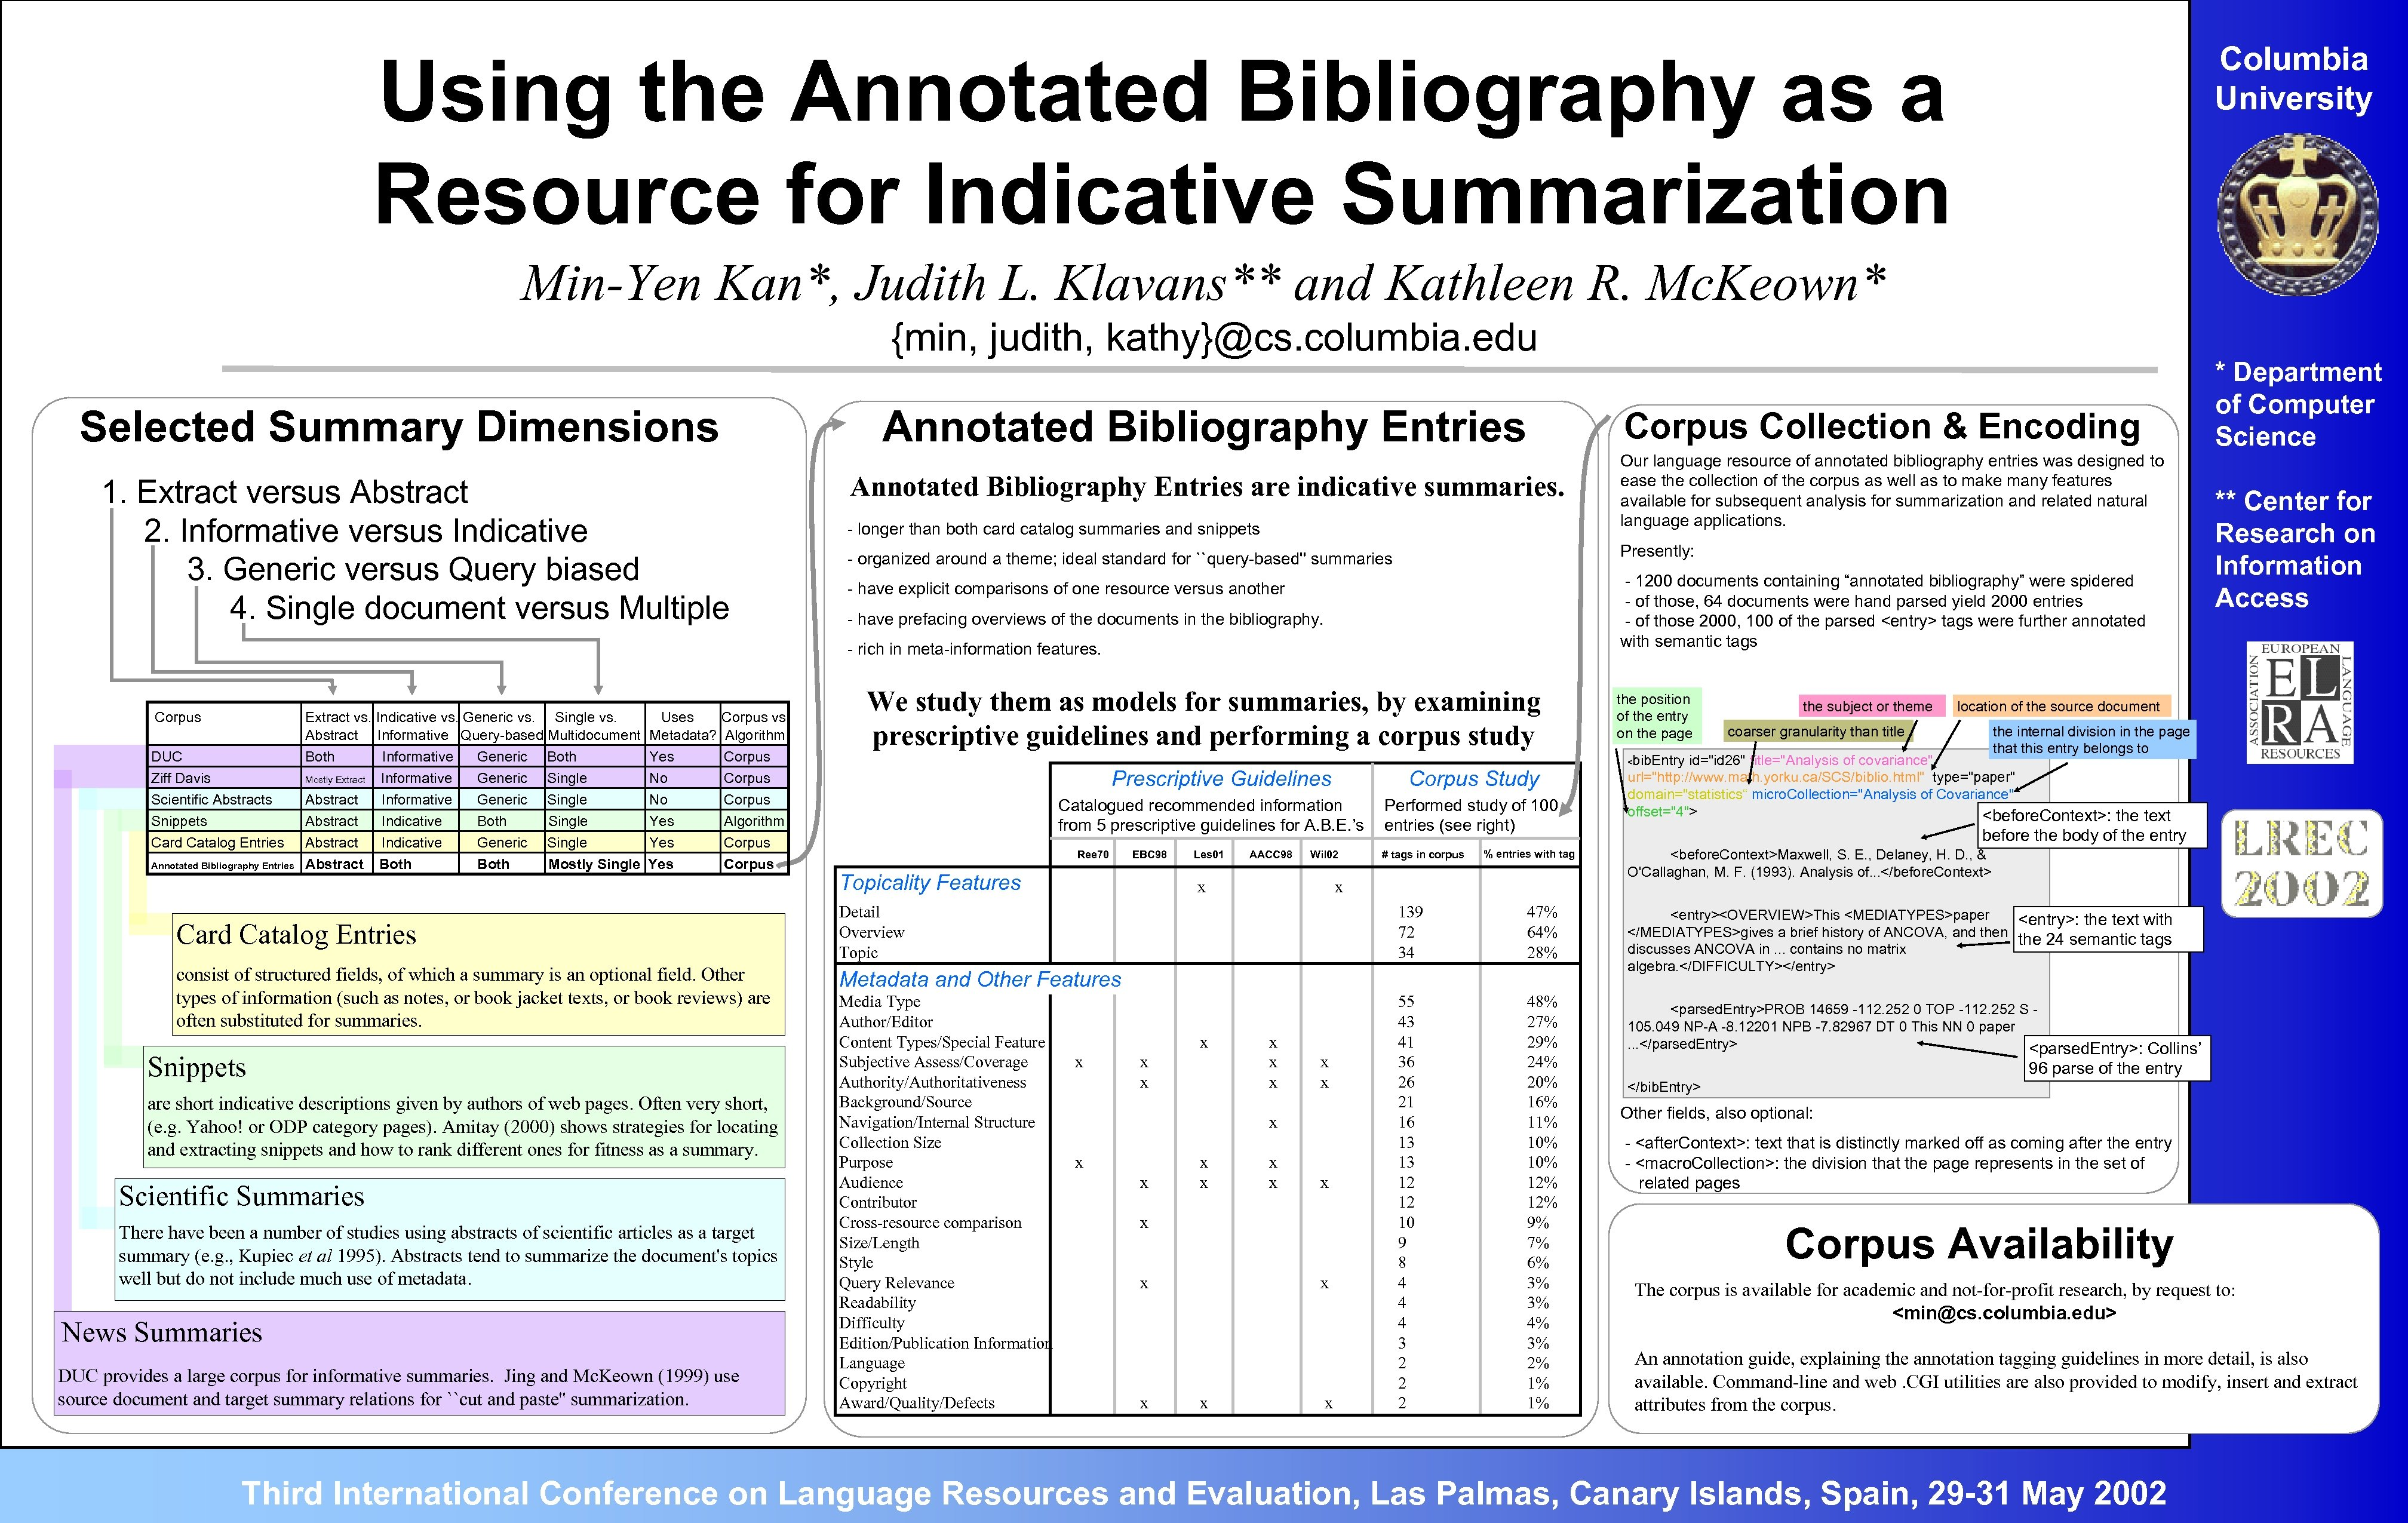 Columbia University Using the Annotated Bibliography as a Resource for Indicative Summarization Min-Yen Kan*,